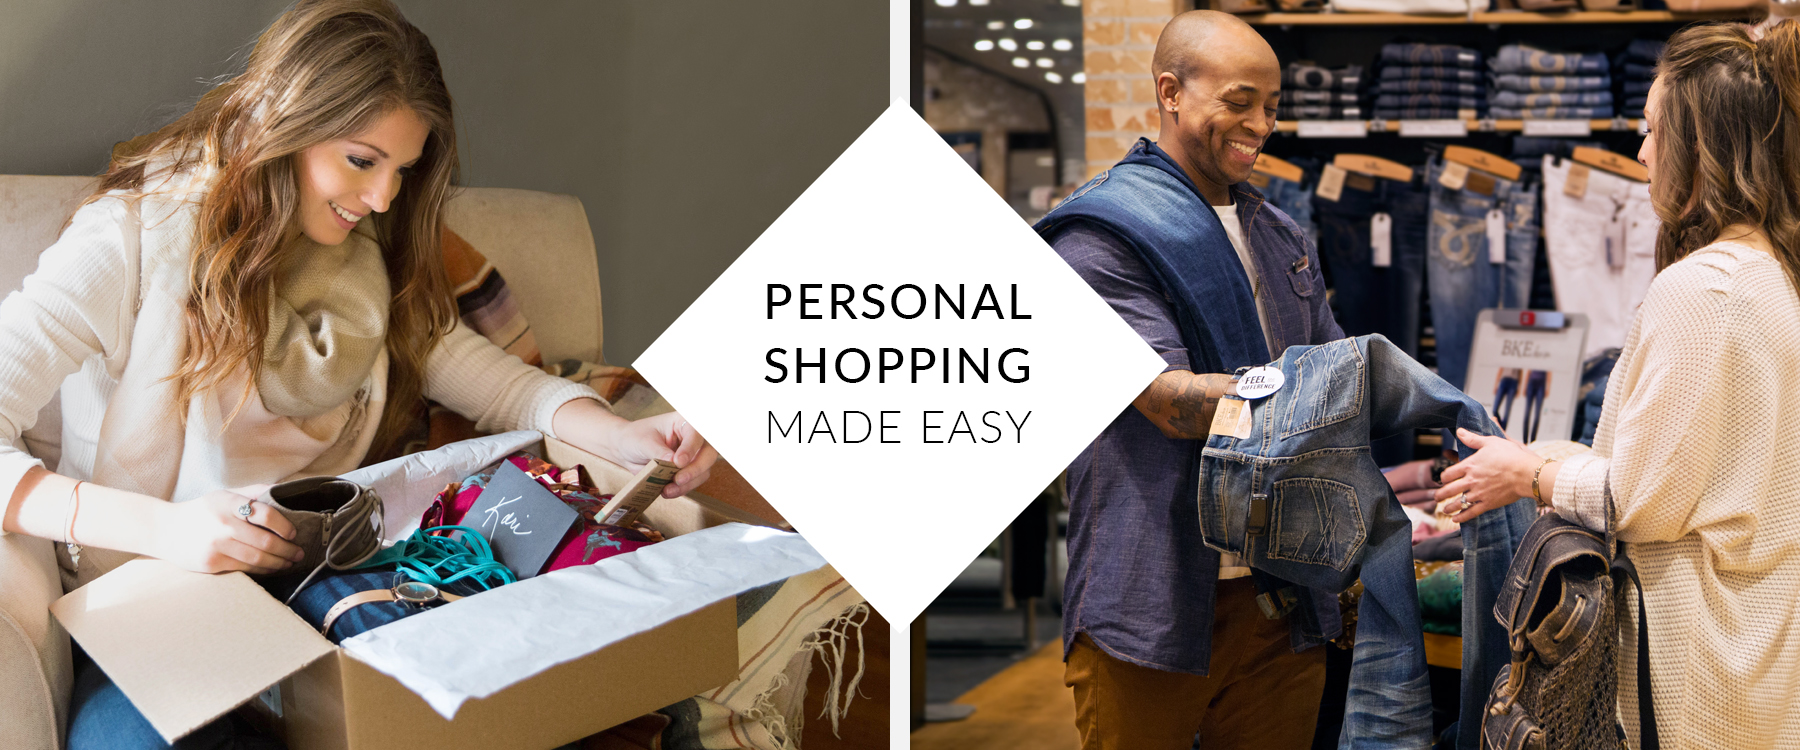 Personal Shopping Made Easy Banner